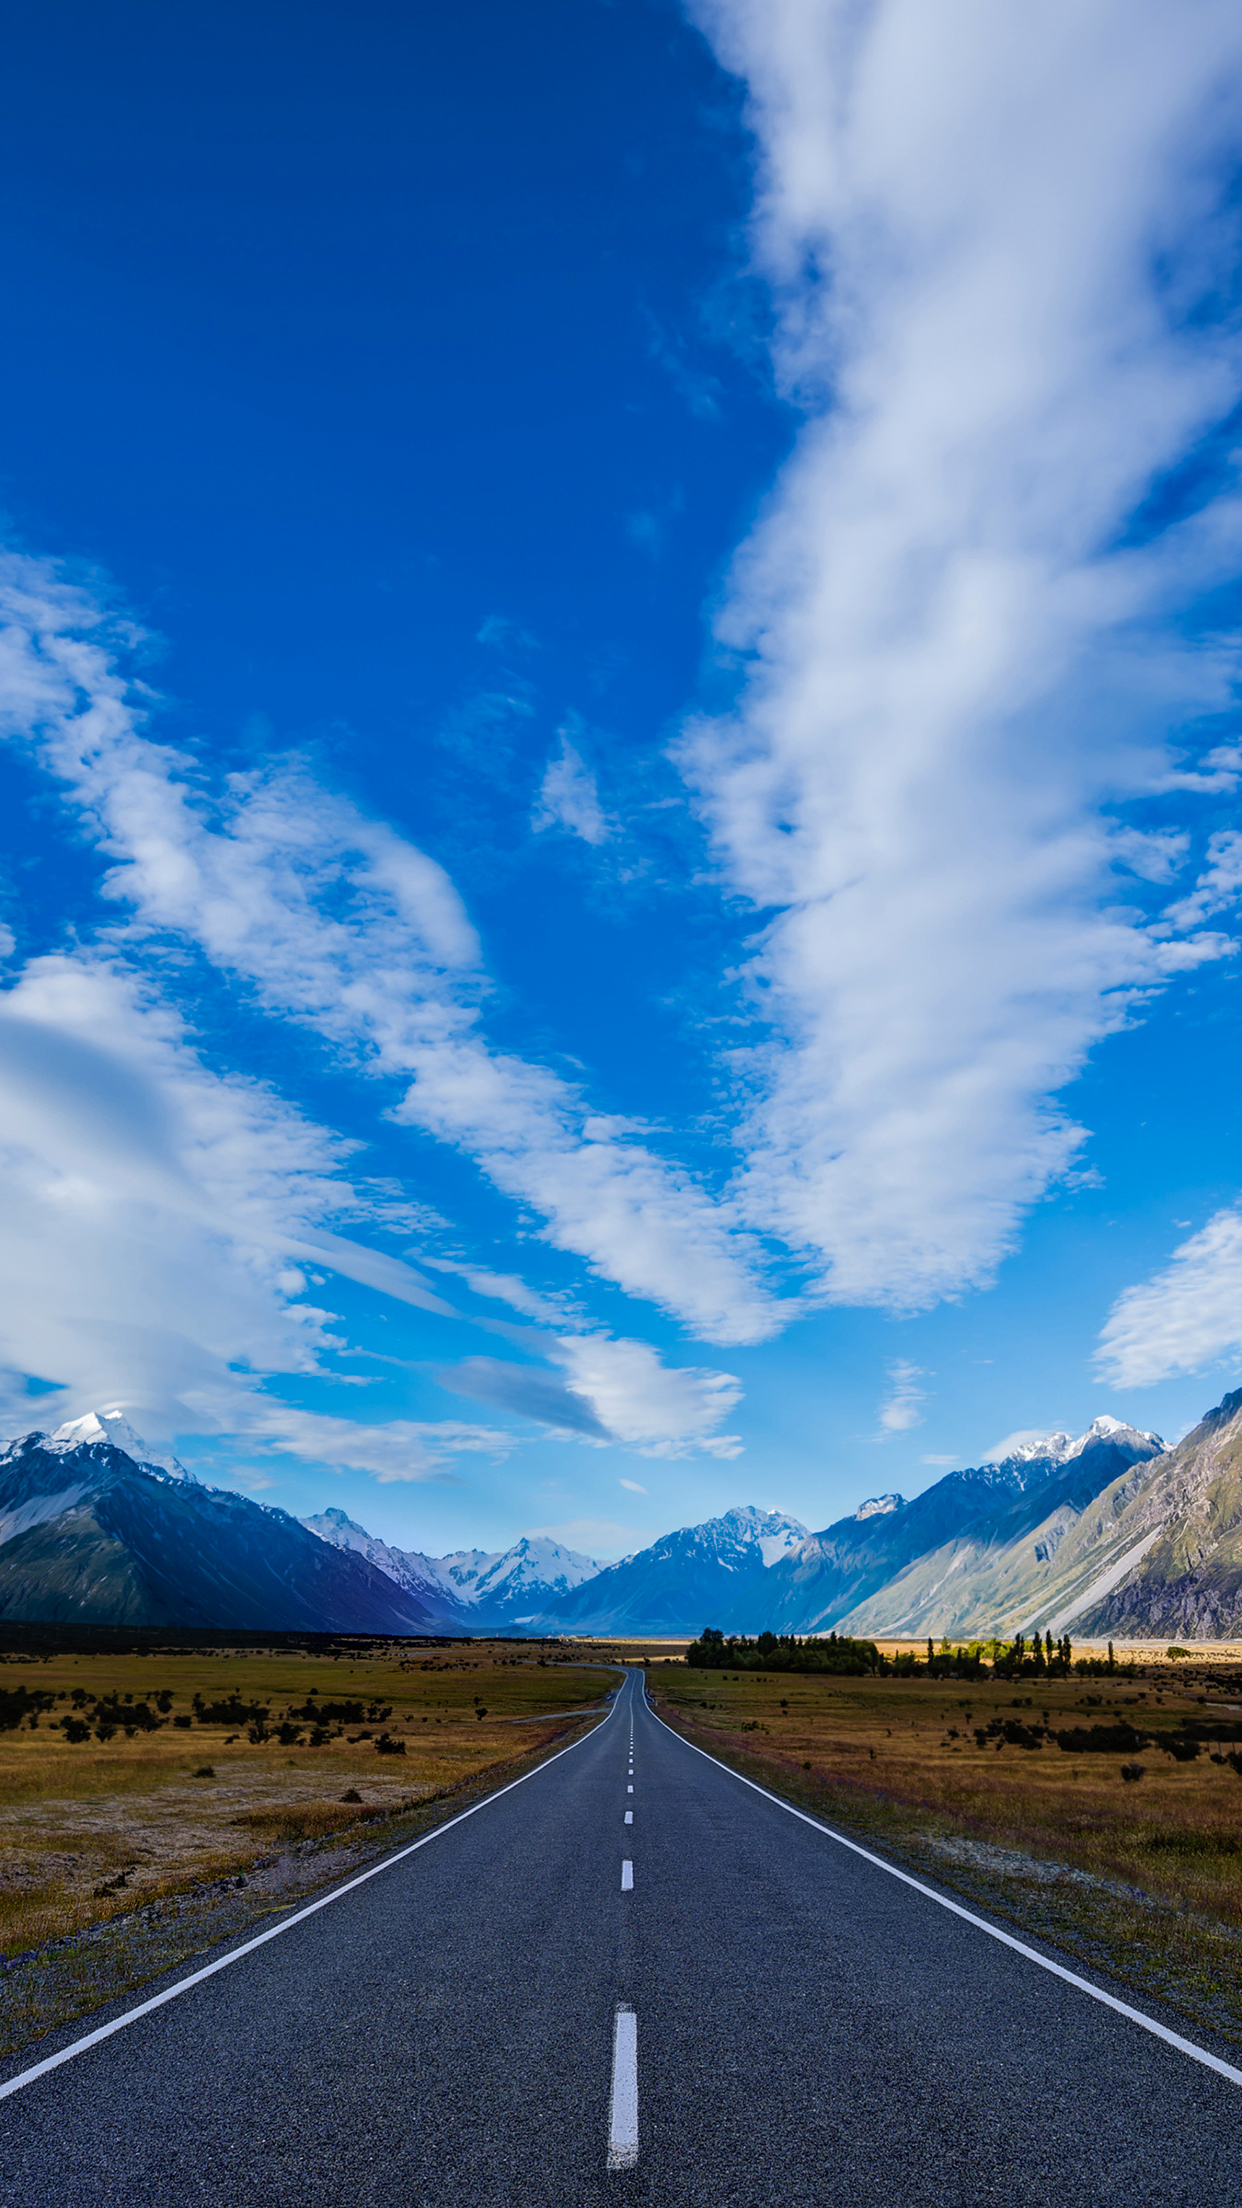 New Zealand Road 3Wallpapers iPhone Parallax Les 3 Wallpapers iPhone du jour (17/10/2015)